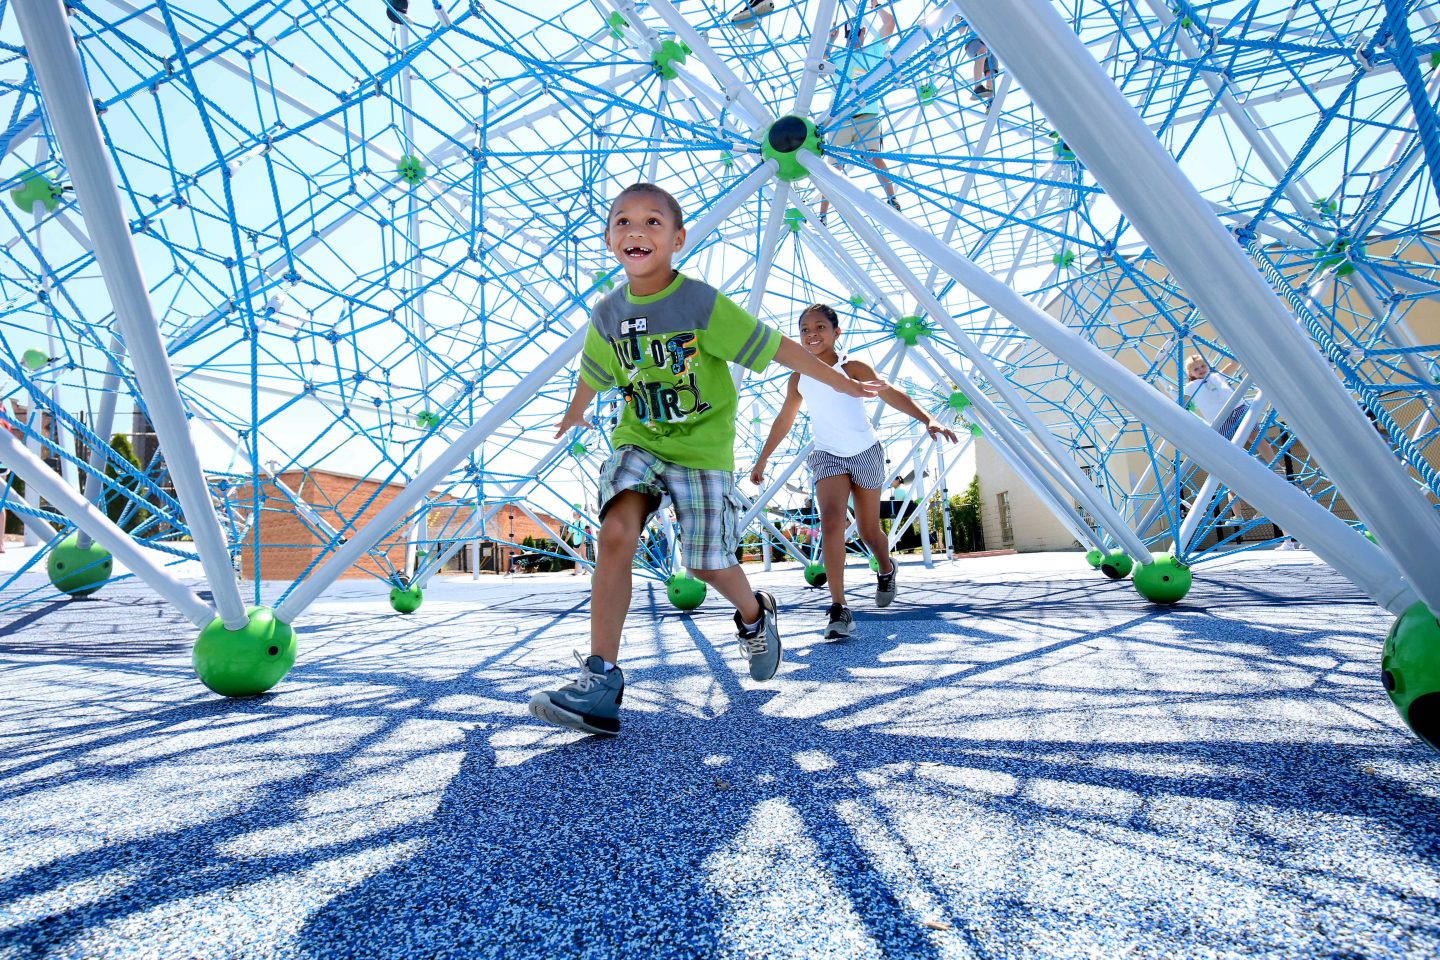 Beneath the spatial net of the Neptun XXL of the Berliner Seilfabrik - Play equipment for life